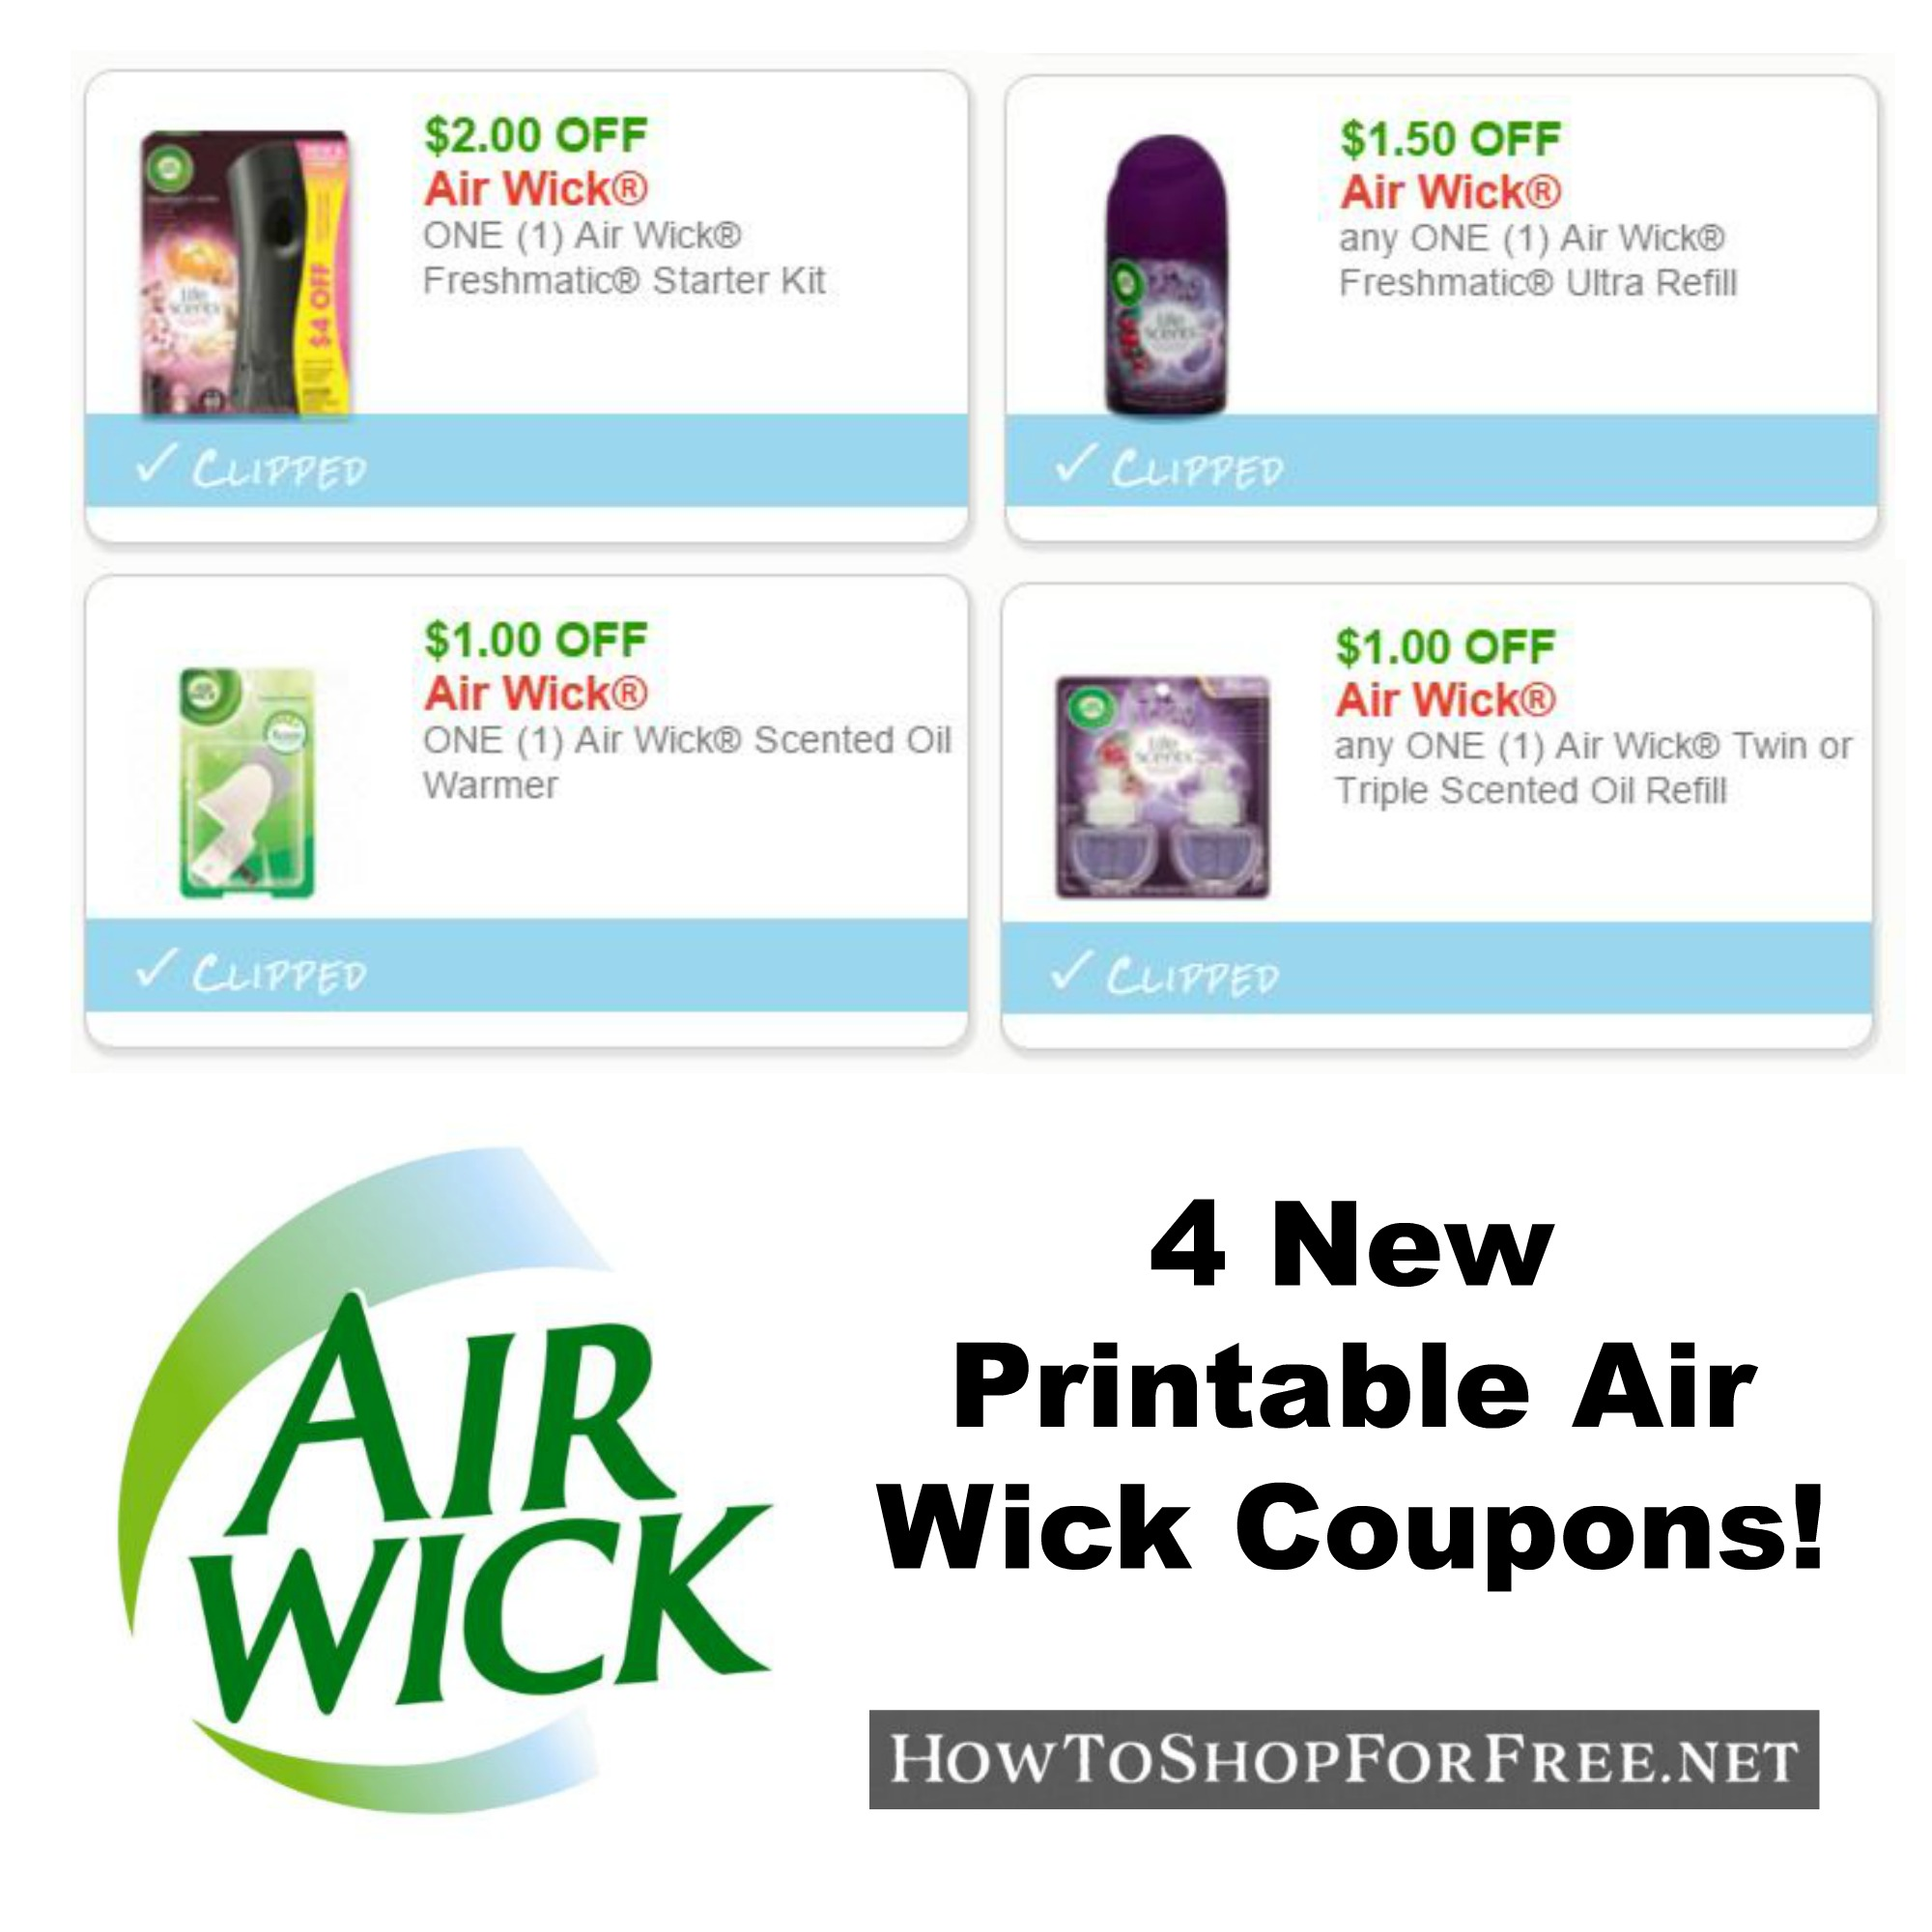 New Printable Coupons Four Air Wick Coupons Pre Clipped For You How To Shop For Free With Kathy Spencer